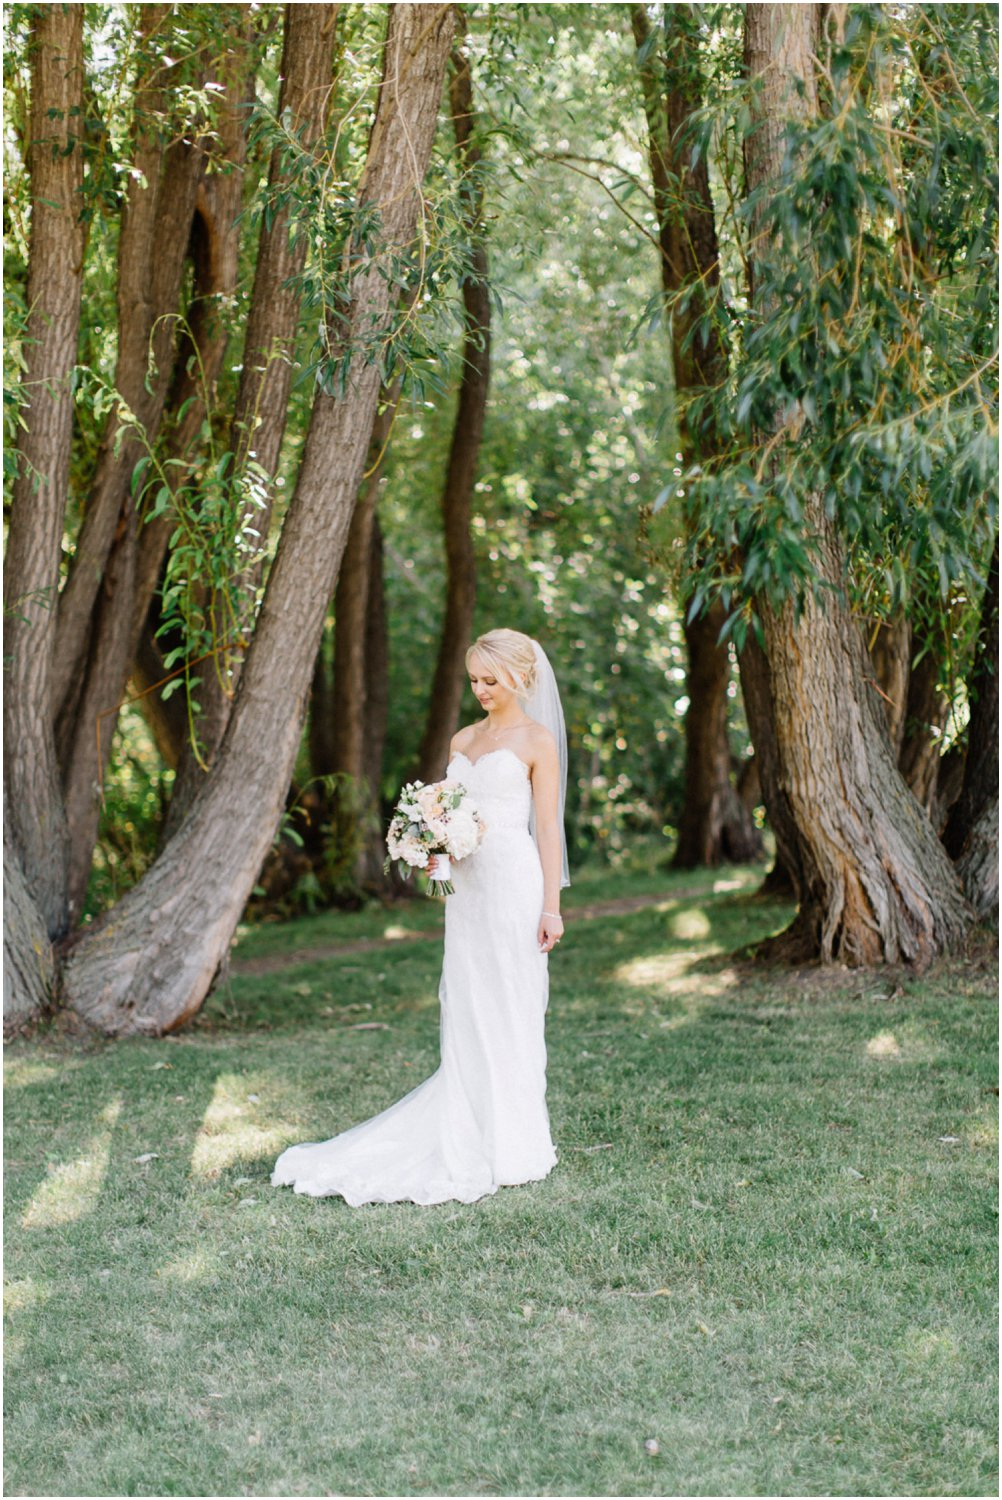 Confederation park wedding